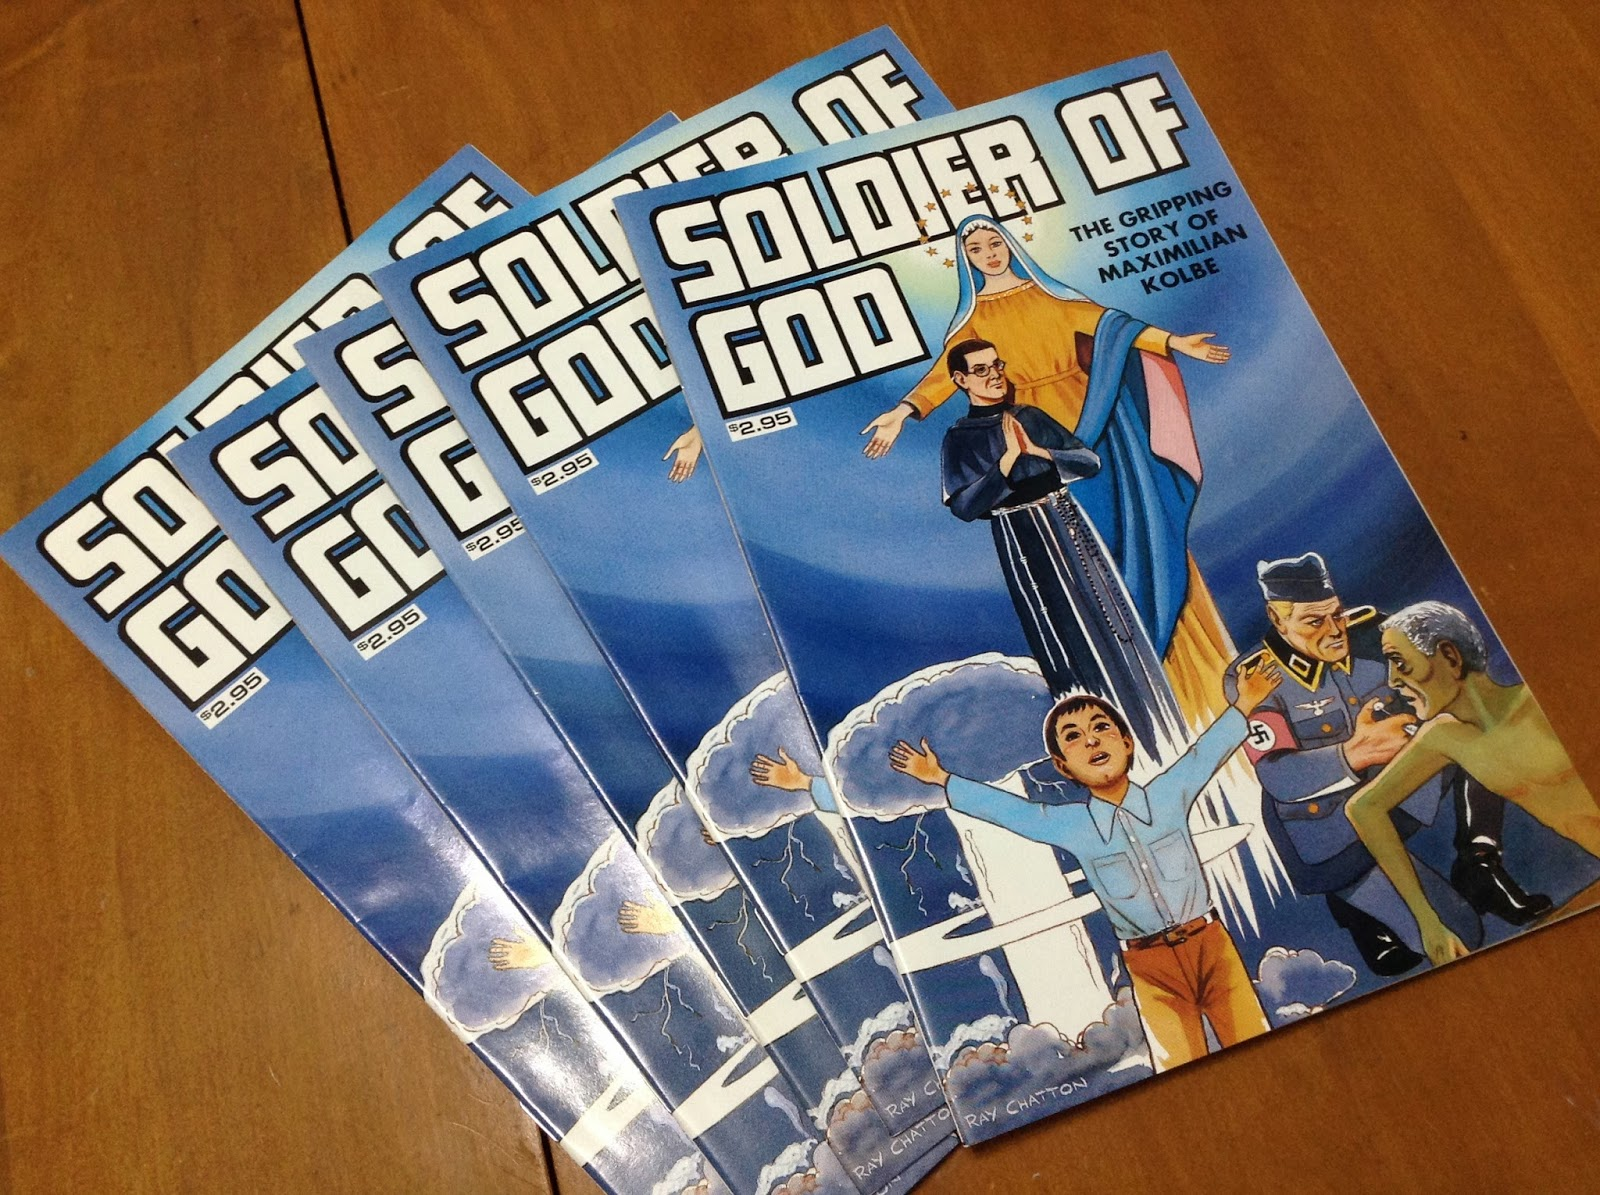 http://store.stlukeproductions.com/Soldier-of-God-Comic-Book.html